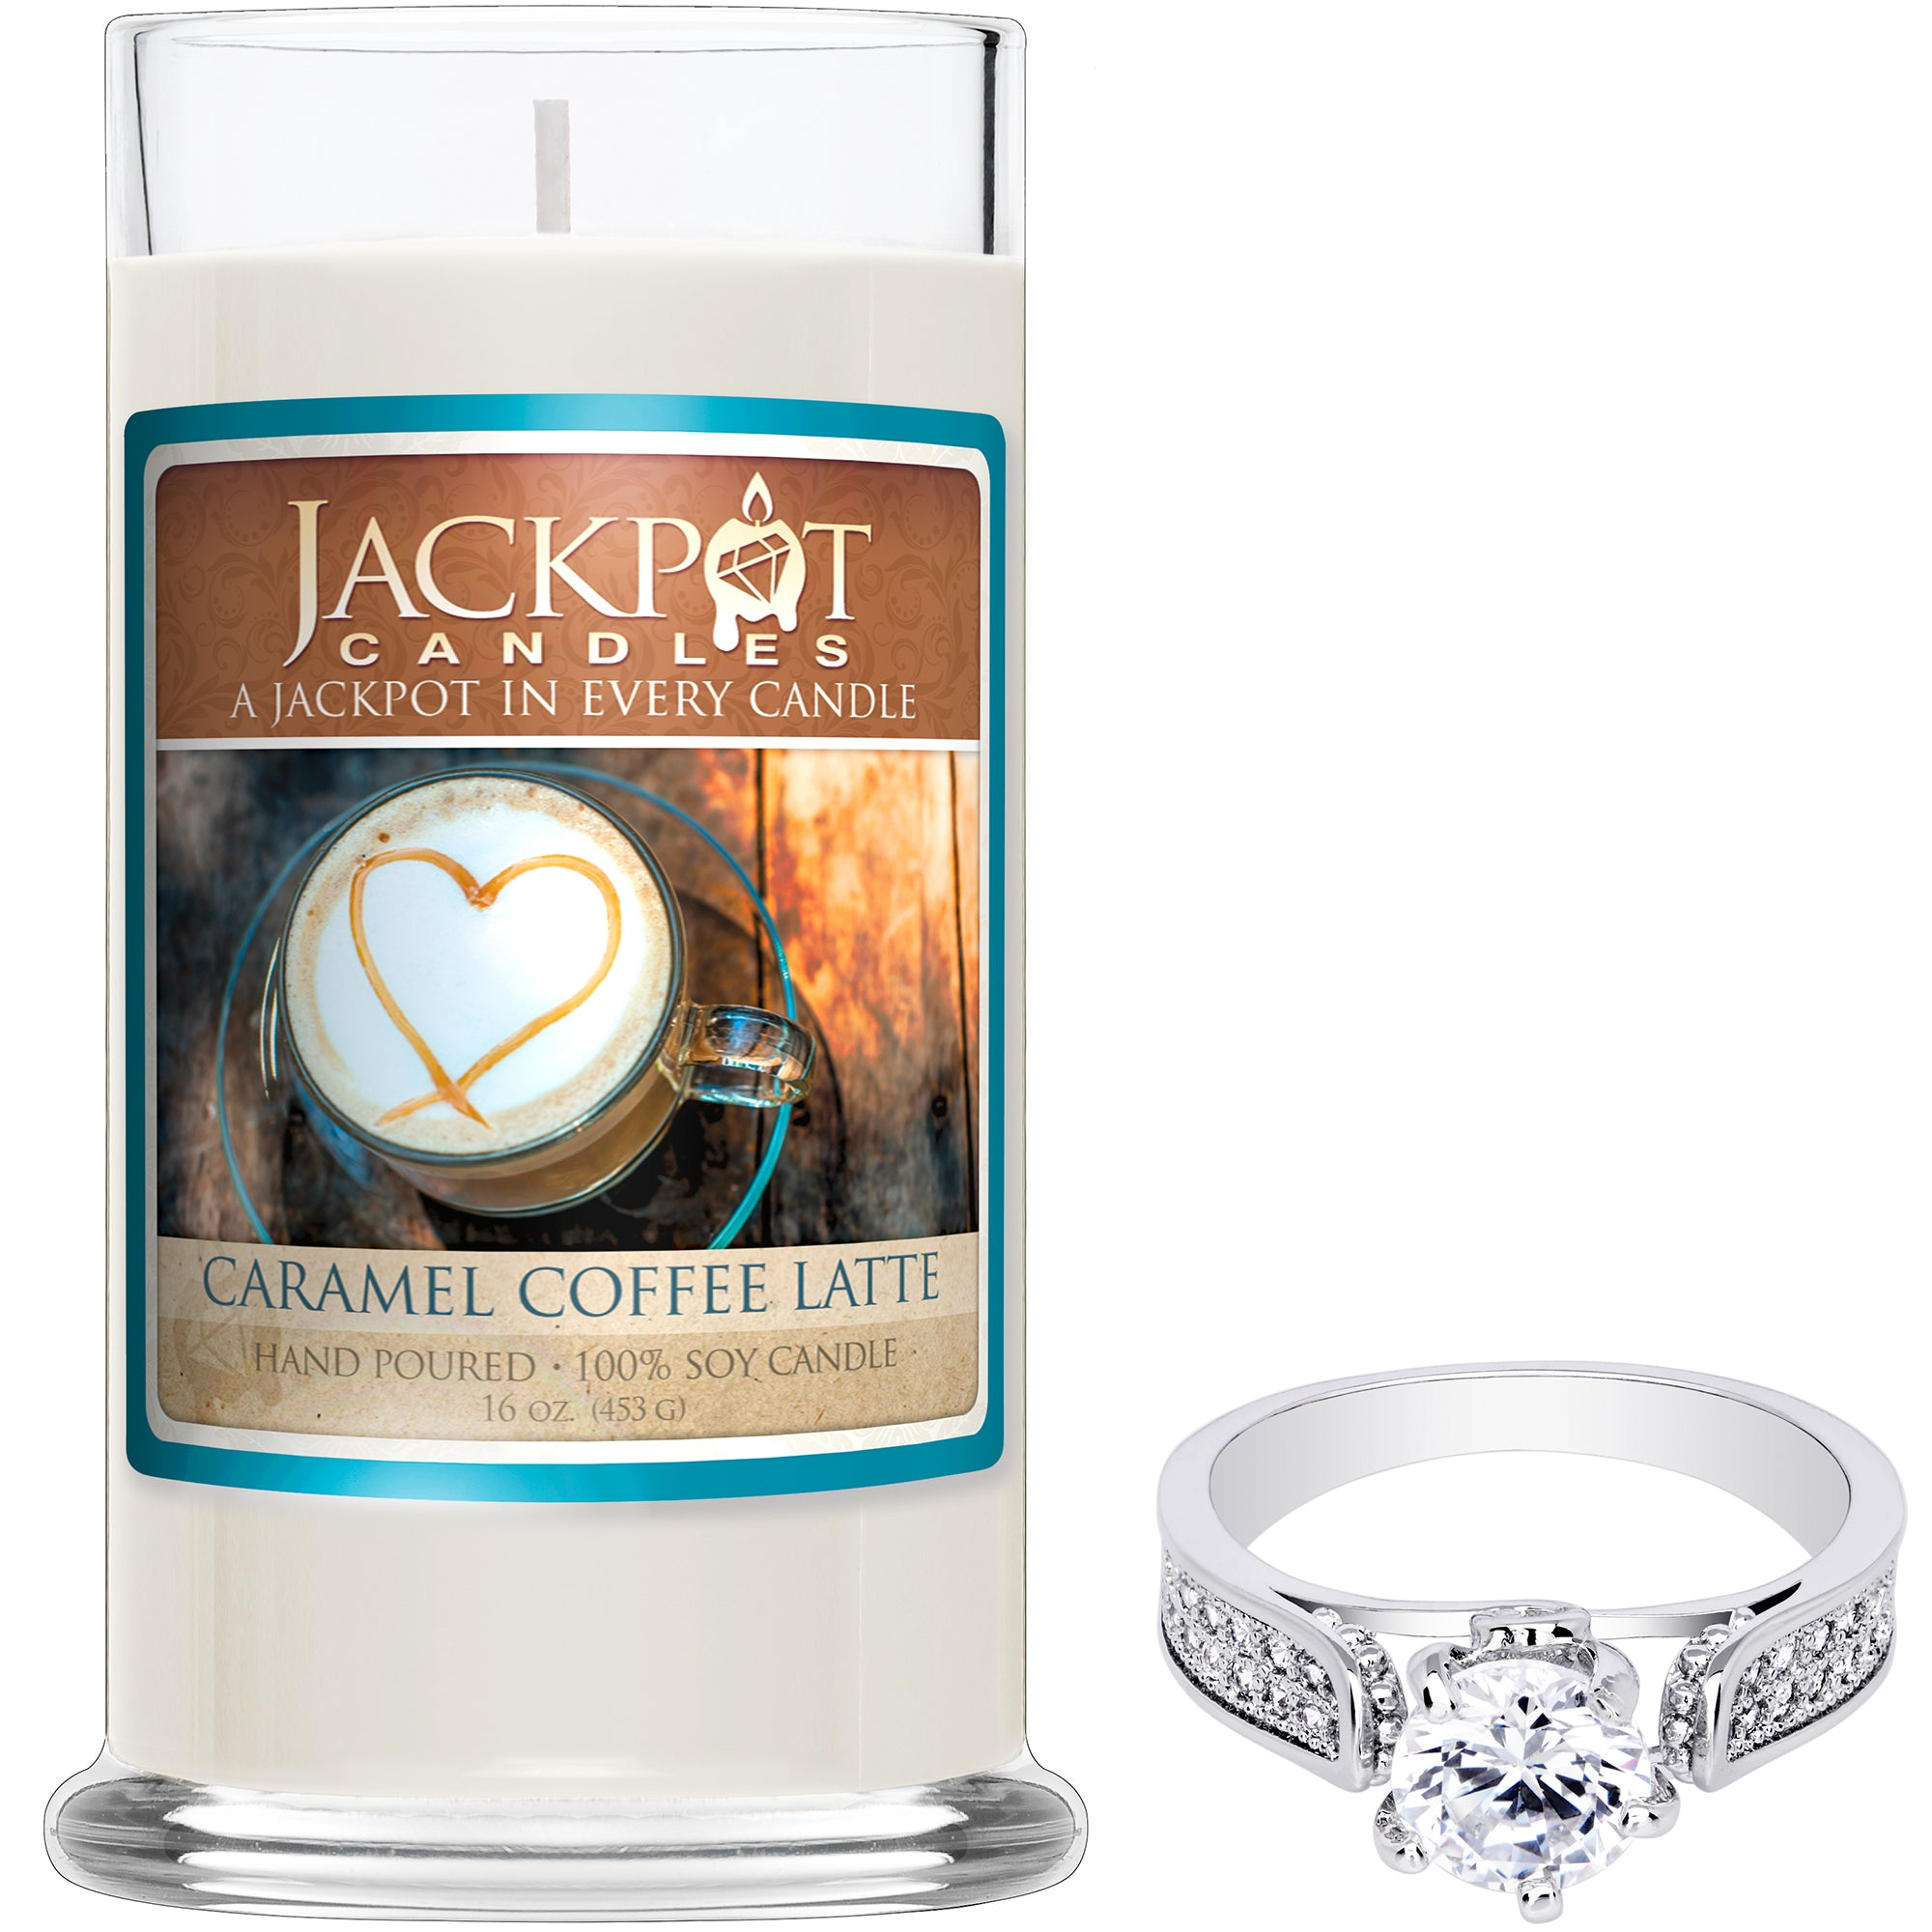 Caramel Coffee Latte Jewelry Ring Candle